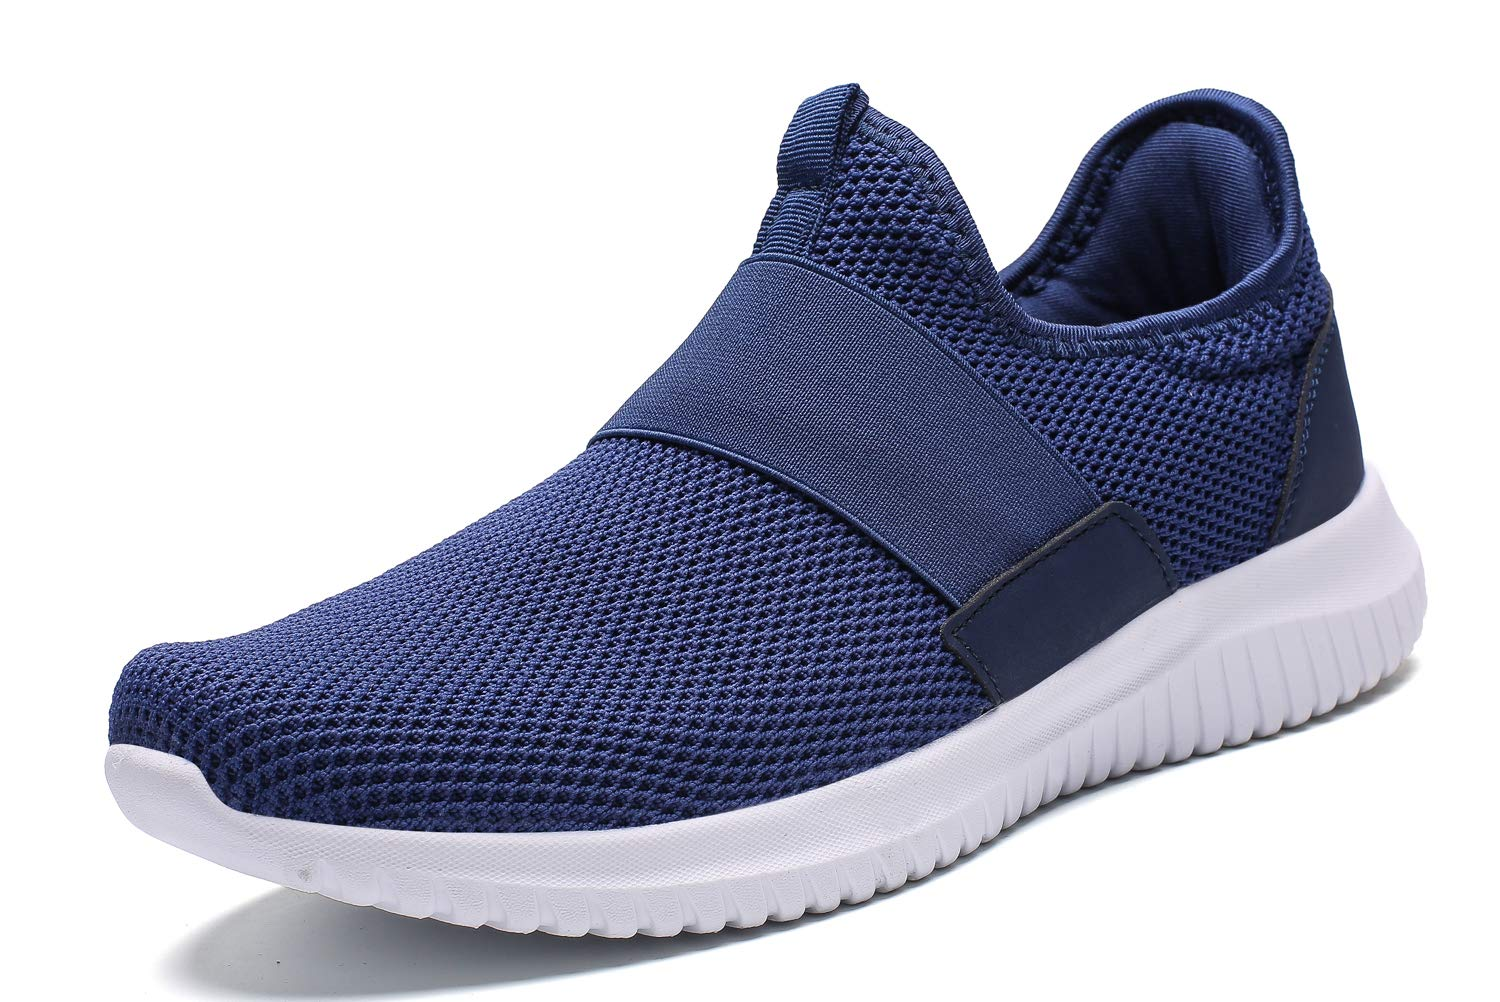 eb5f24d5d La Moster Men's Athletic Running Shoes Fashion Sneakers Casual Walking  Shoes for Men Tennis Baseball Racquetball